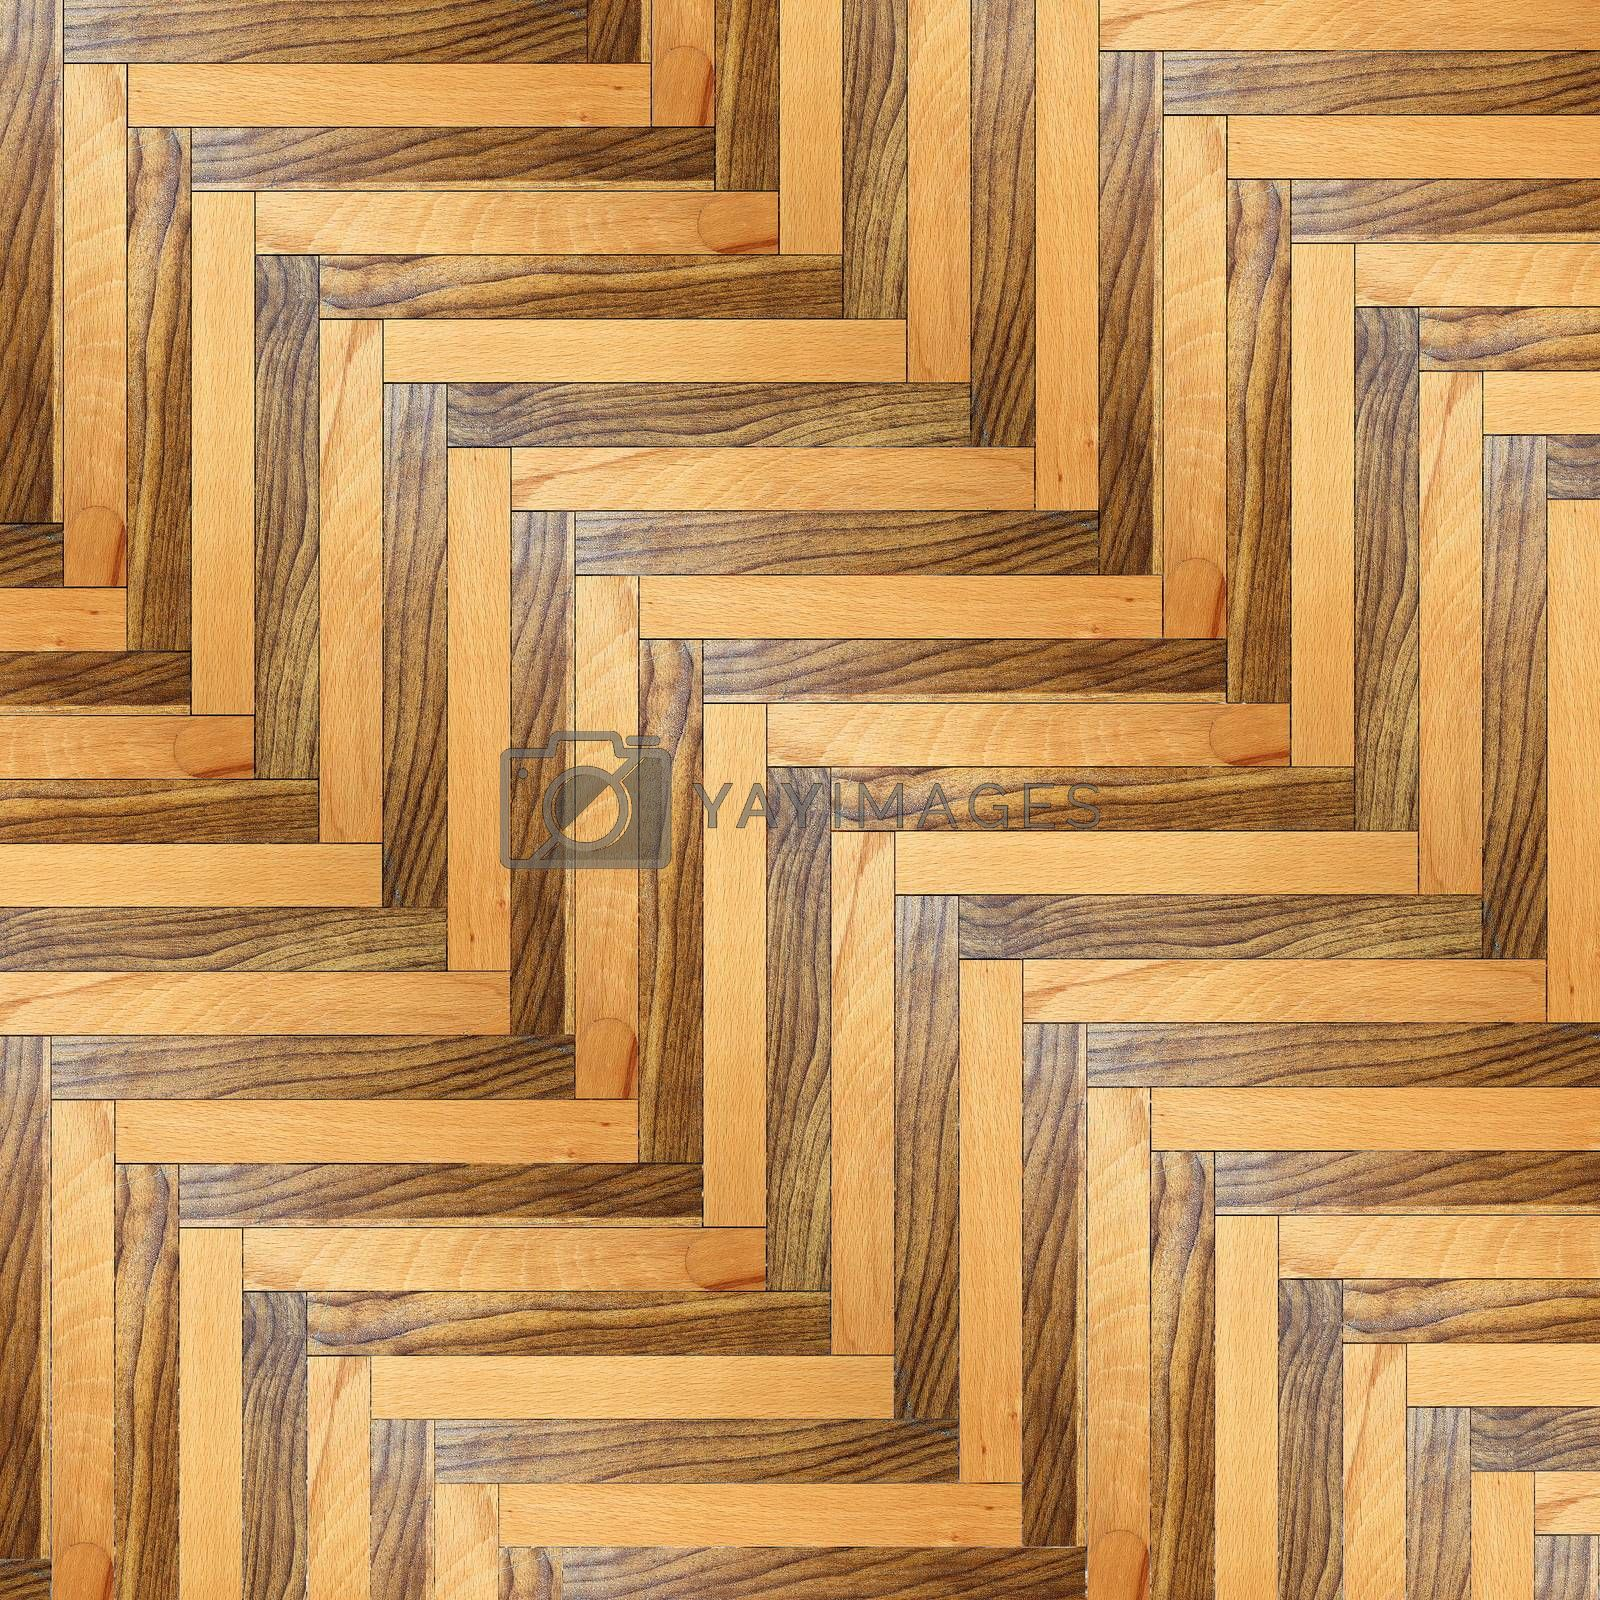 Royalty free image of striped model of wood floor by taviphoto